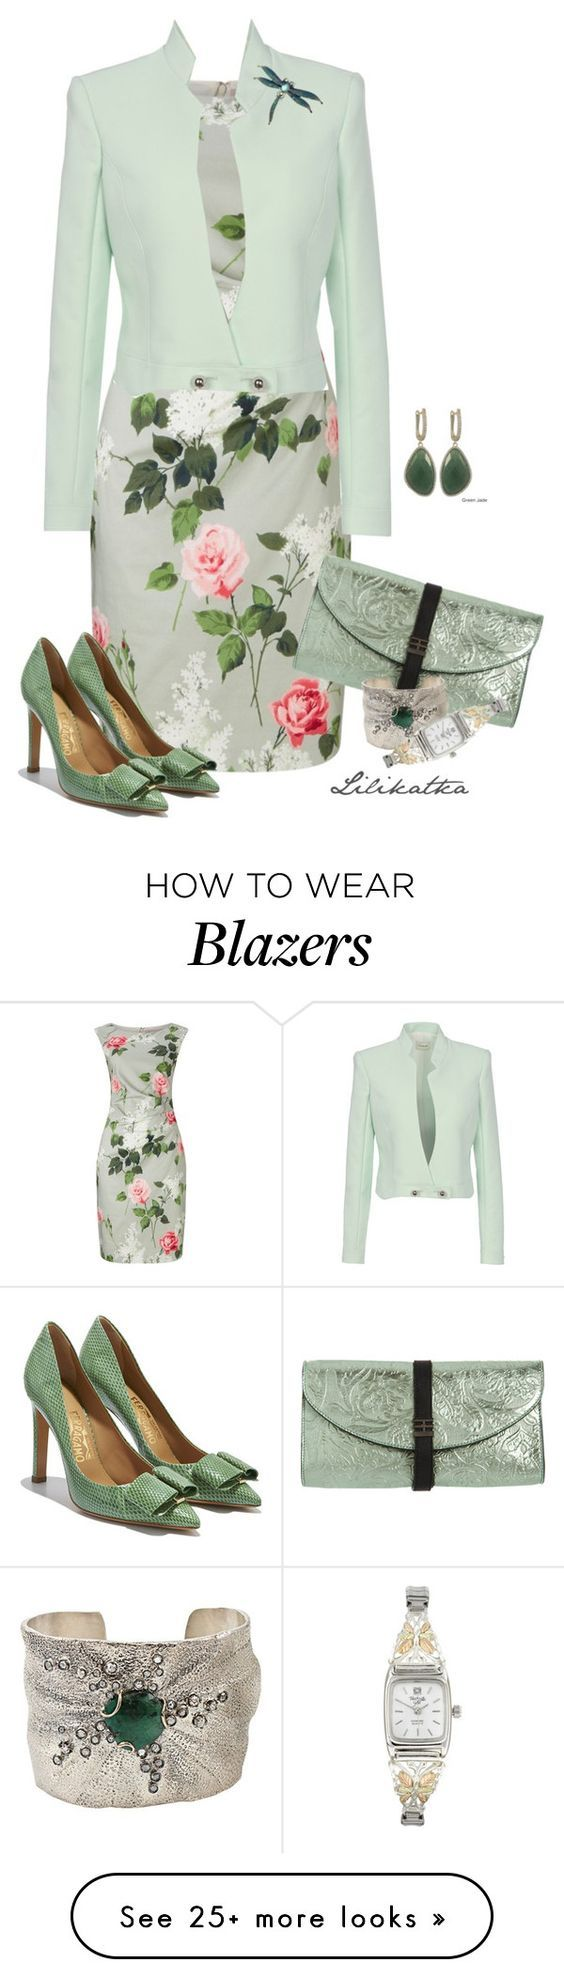 """""""Pivonka#1261"""" by lilikatka on Polyvore featuring Phase Eight, Thierry Mugler, Salvatore Ferragamo, Reece Hudson and Federica Rettore:"""